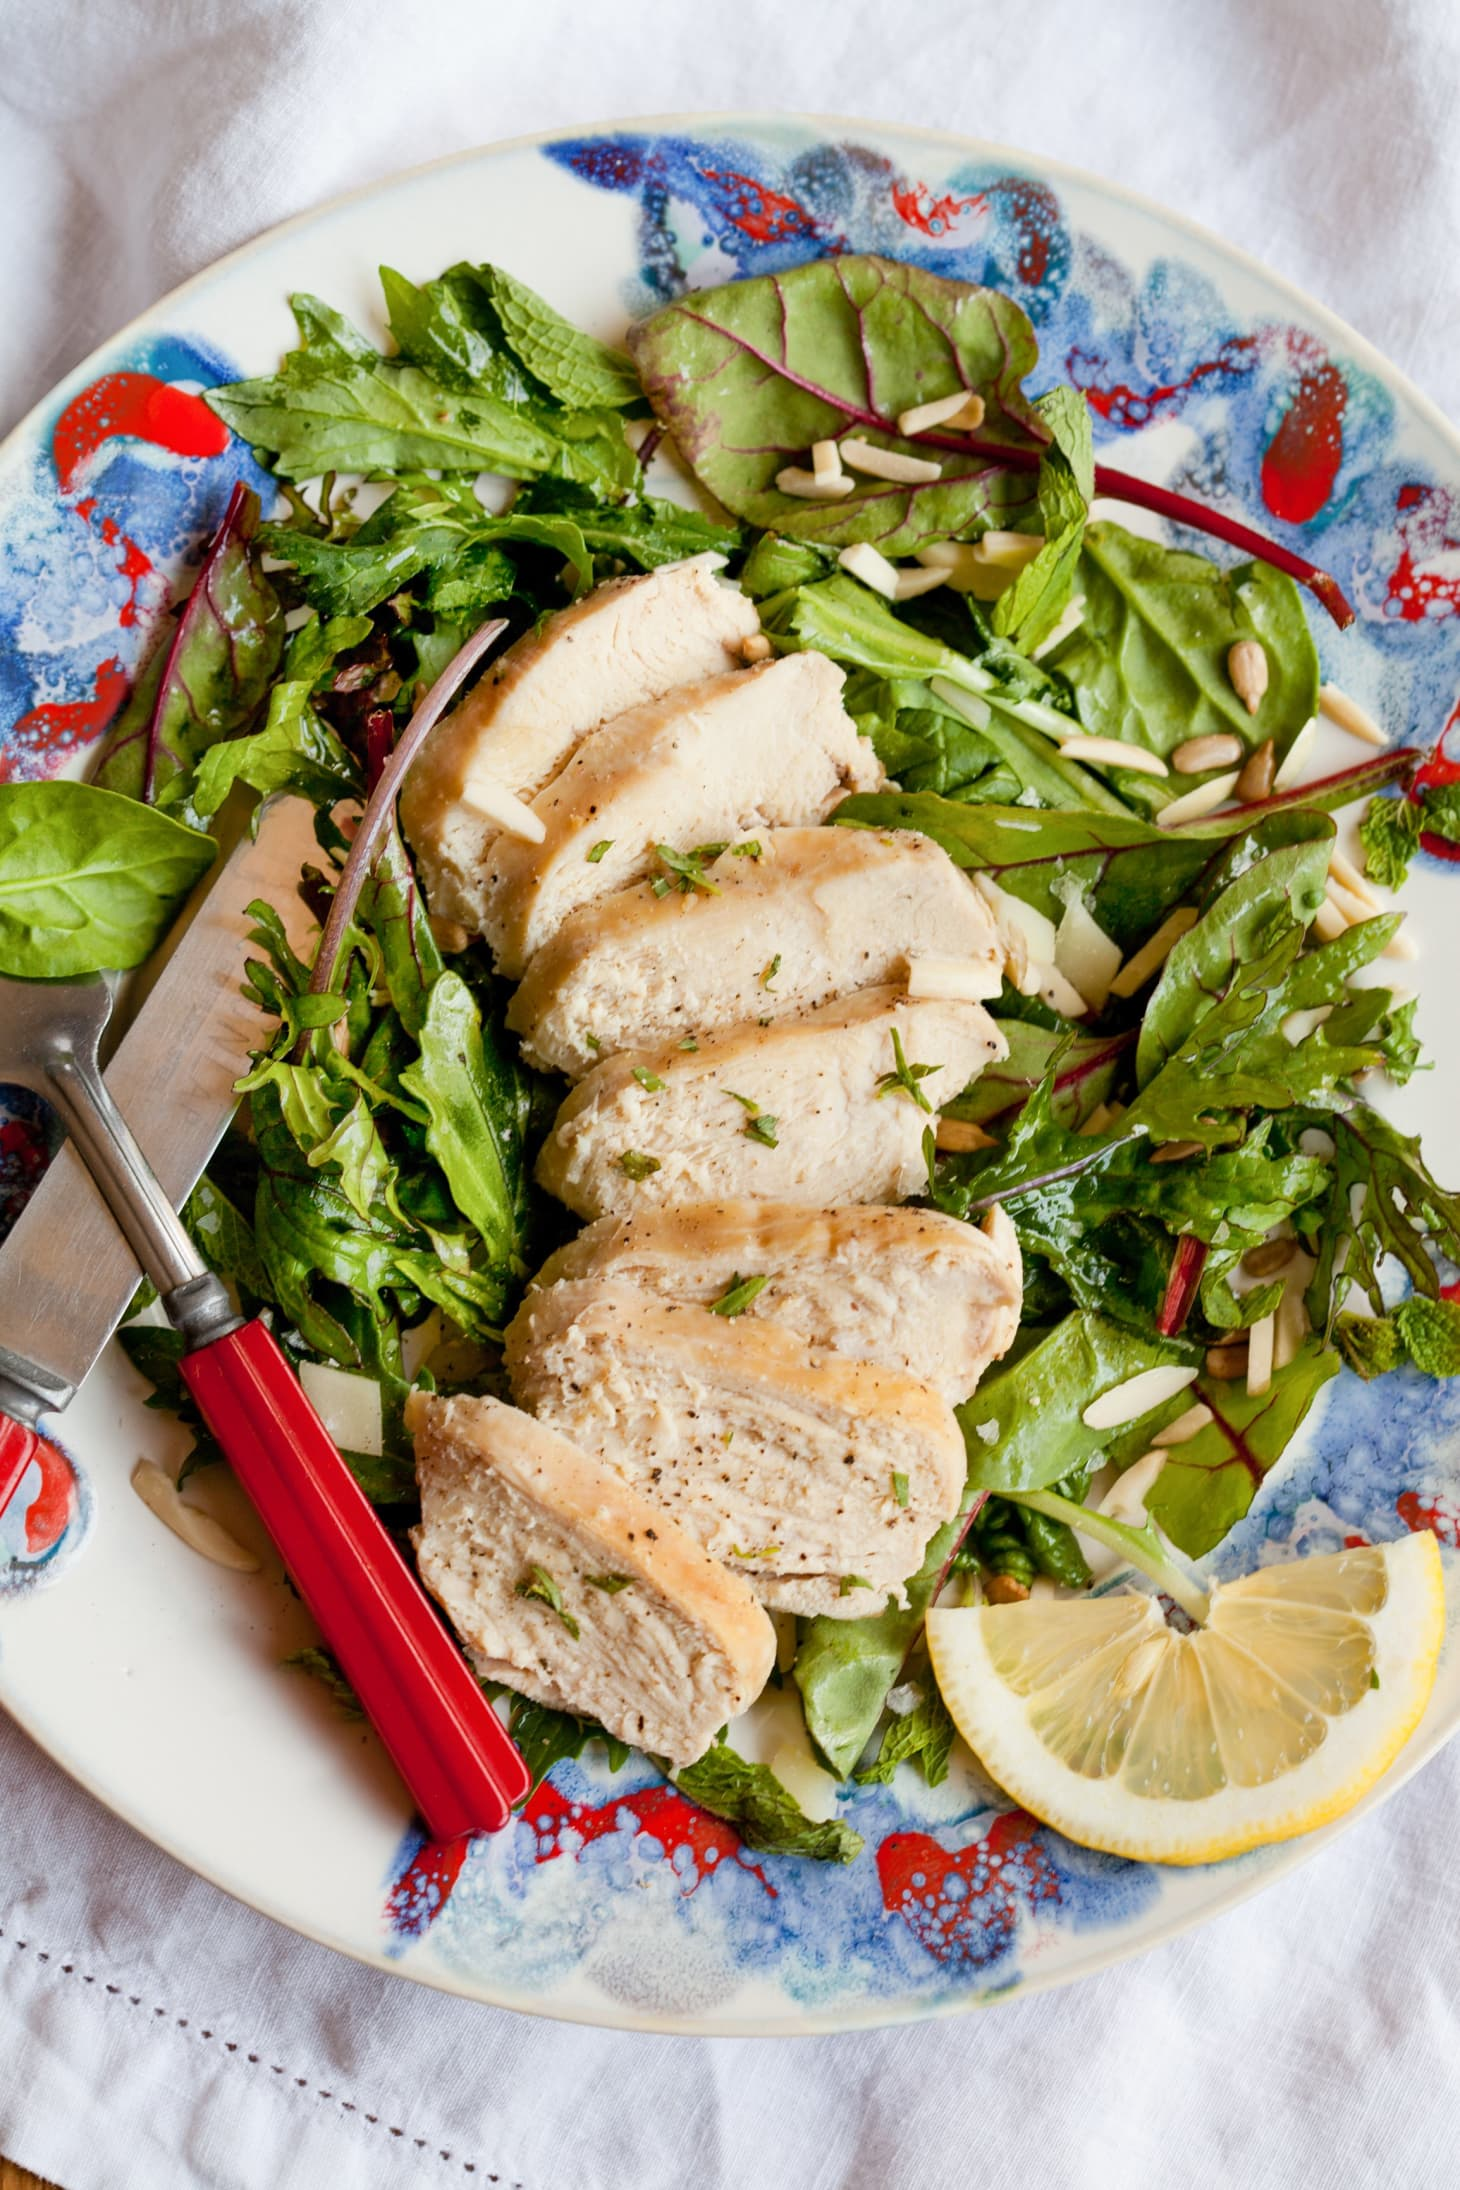 A Ranking of Chicken Cuts from Least to Most Expensive | Kitchn